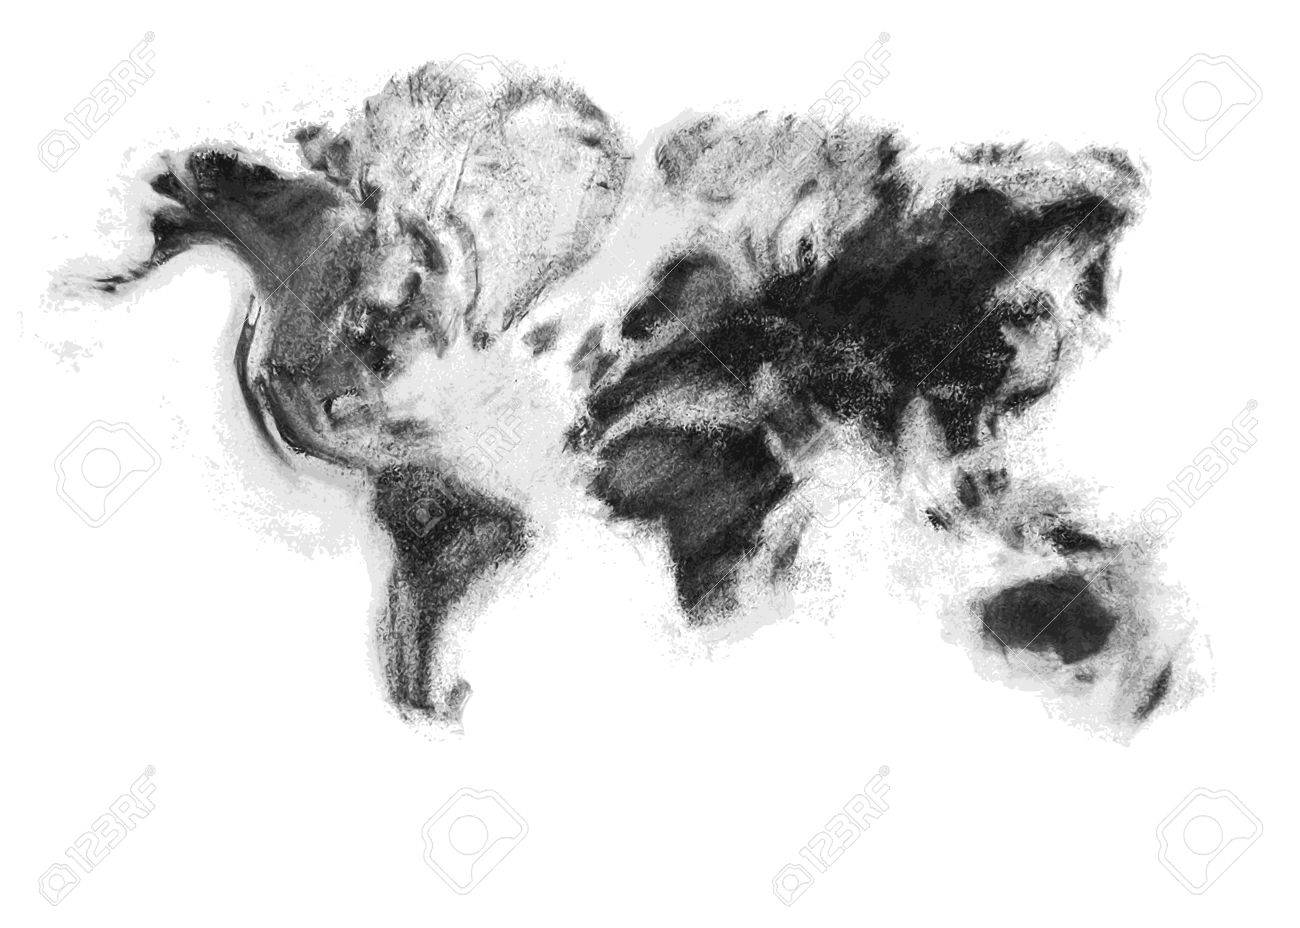 Charcoal artistic vector world map the monochrome hand made charcoal artistic vector world map the monochrome hand made design provides a fresh look over gumiabroncs Choice Image